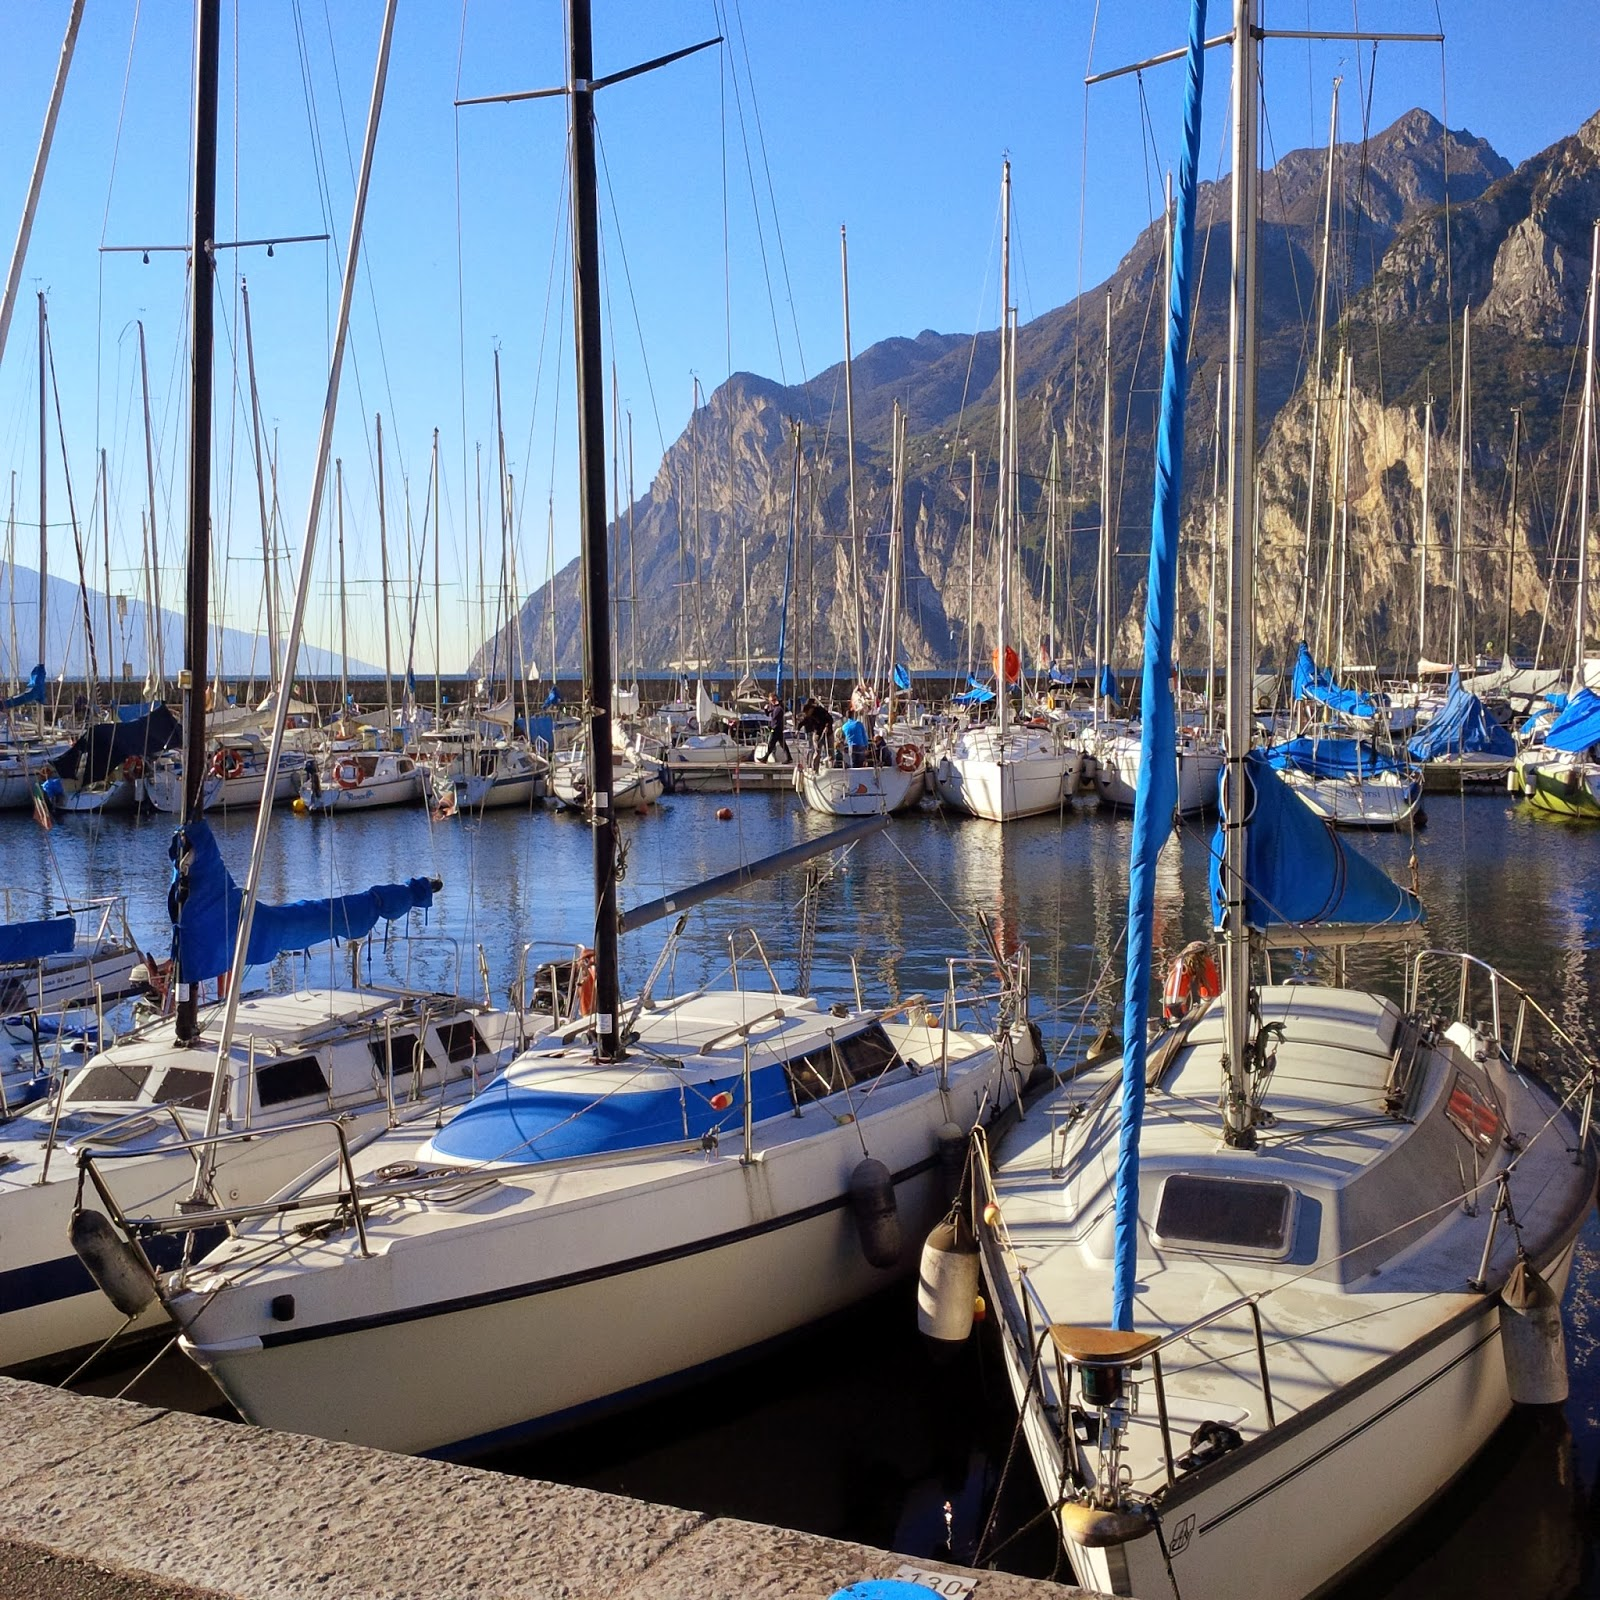 The marina at Riva del Garda